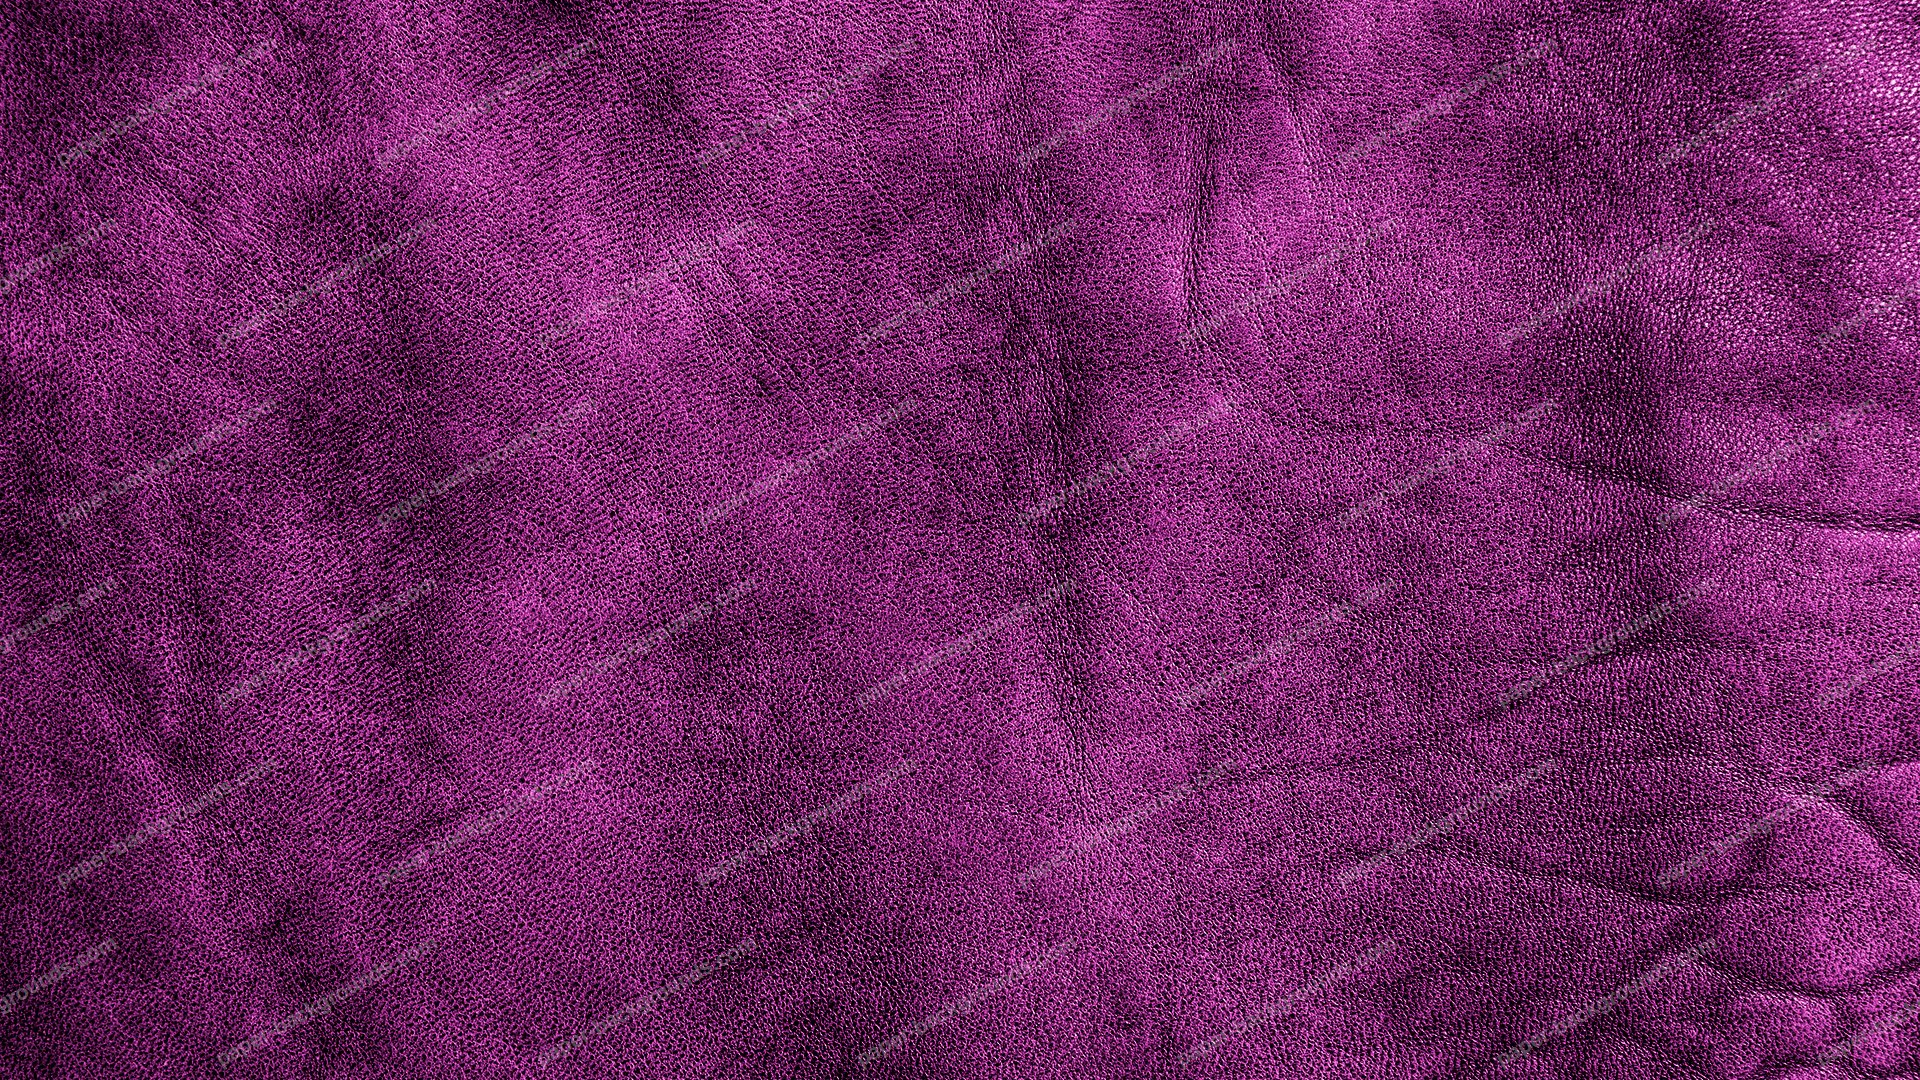 Purple Vintage Leather Background HD 1920 x 1080p